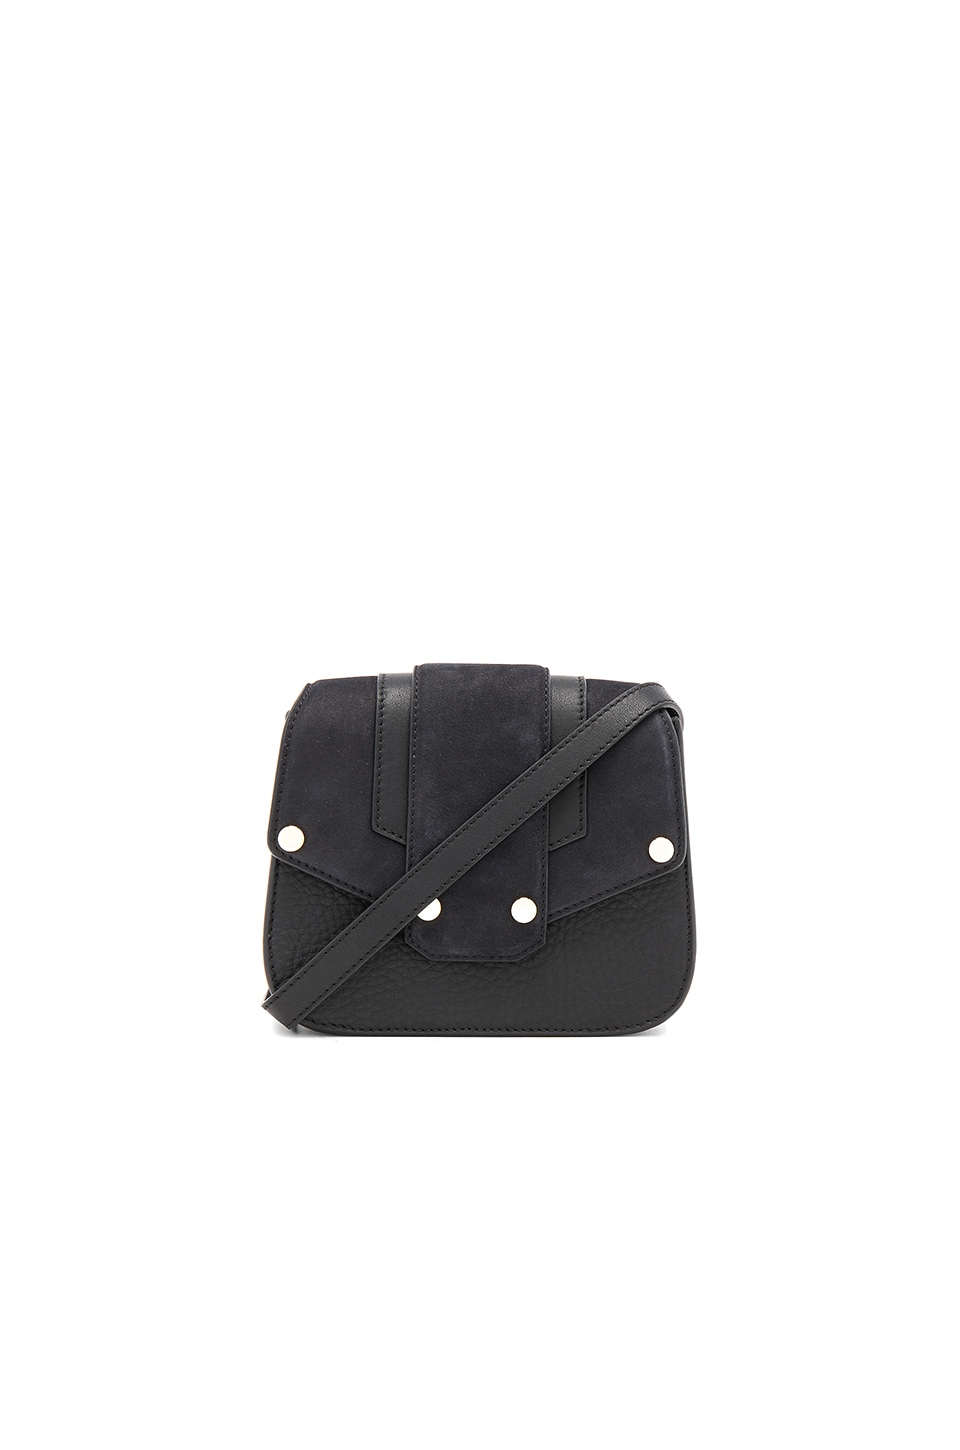 Mackage Polly Mini Crossbody in Black